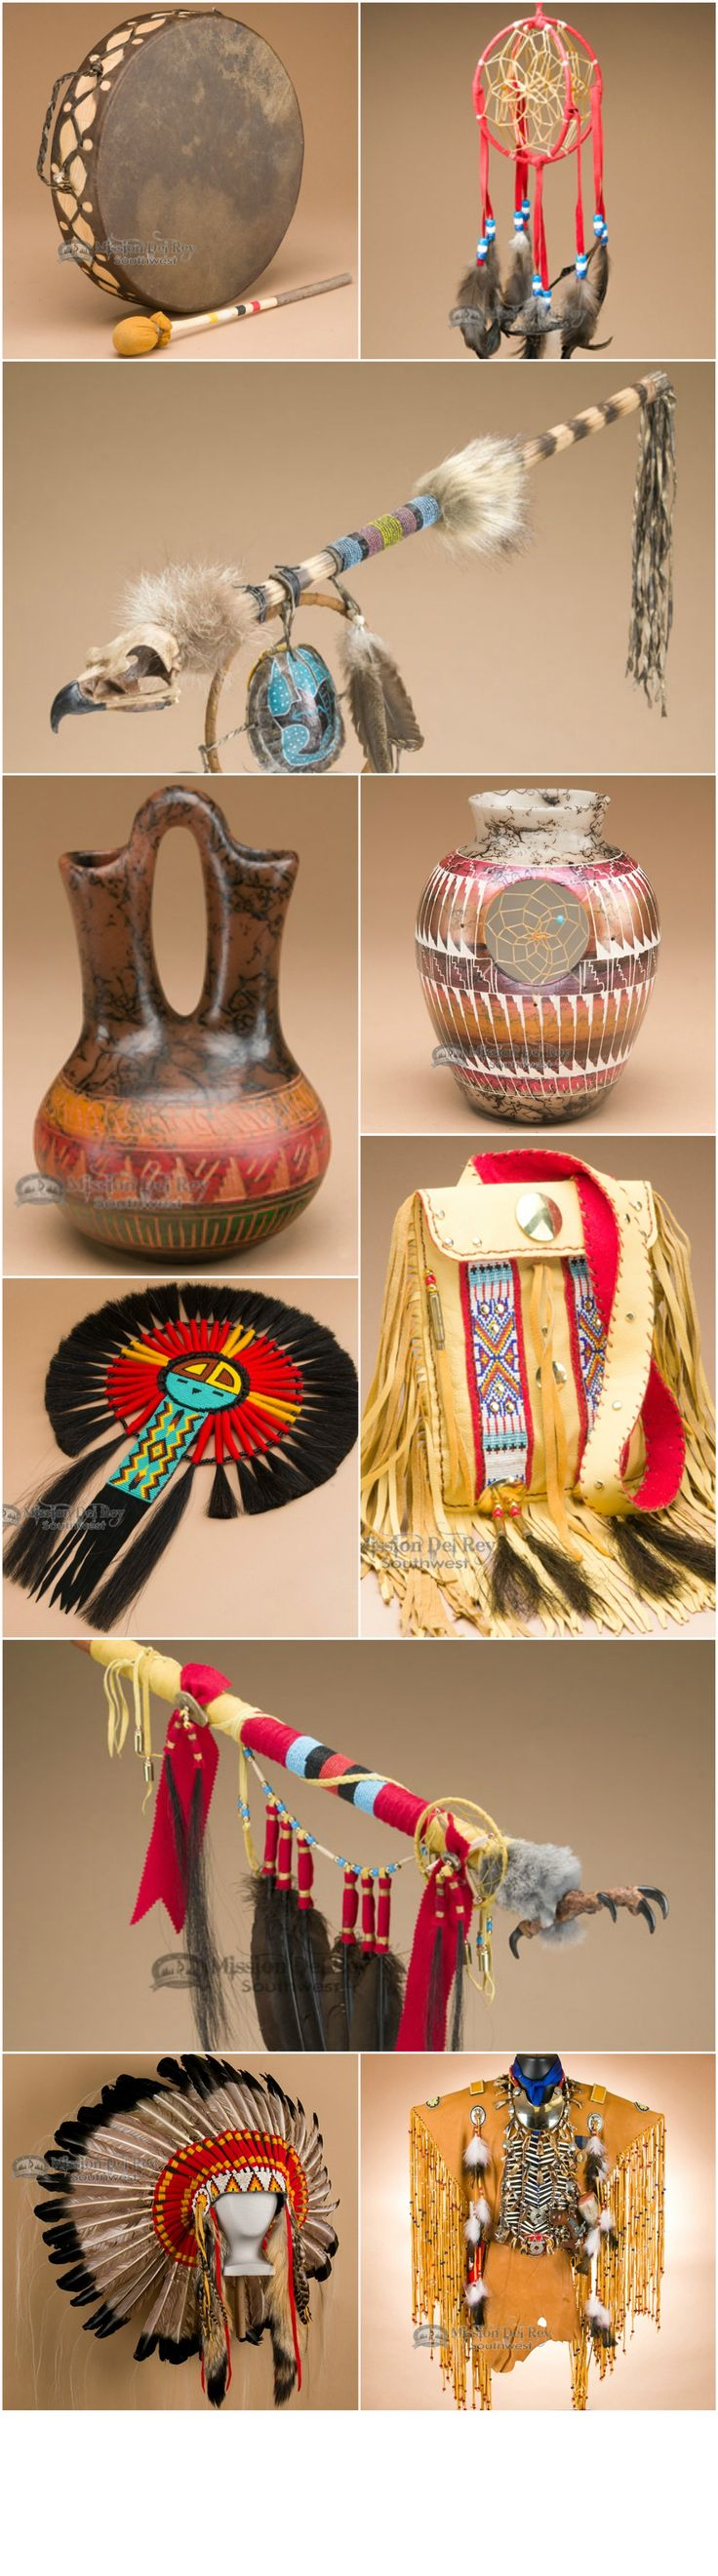 Native American handcrafts, artifacts, regalia, peace pipes, dream catchers, drums, pottery, medicine bags.